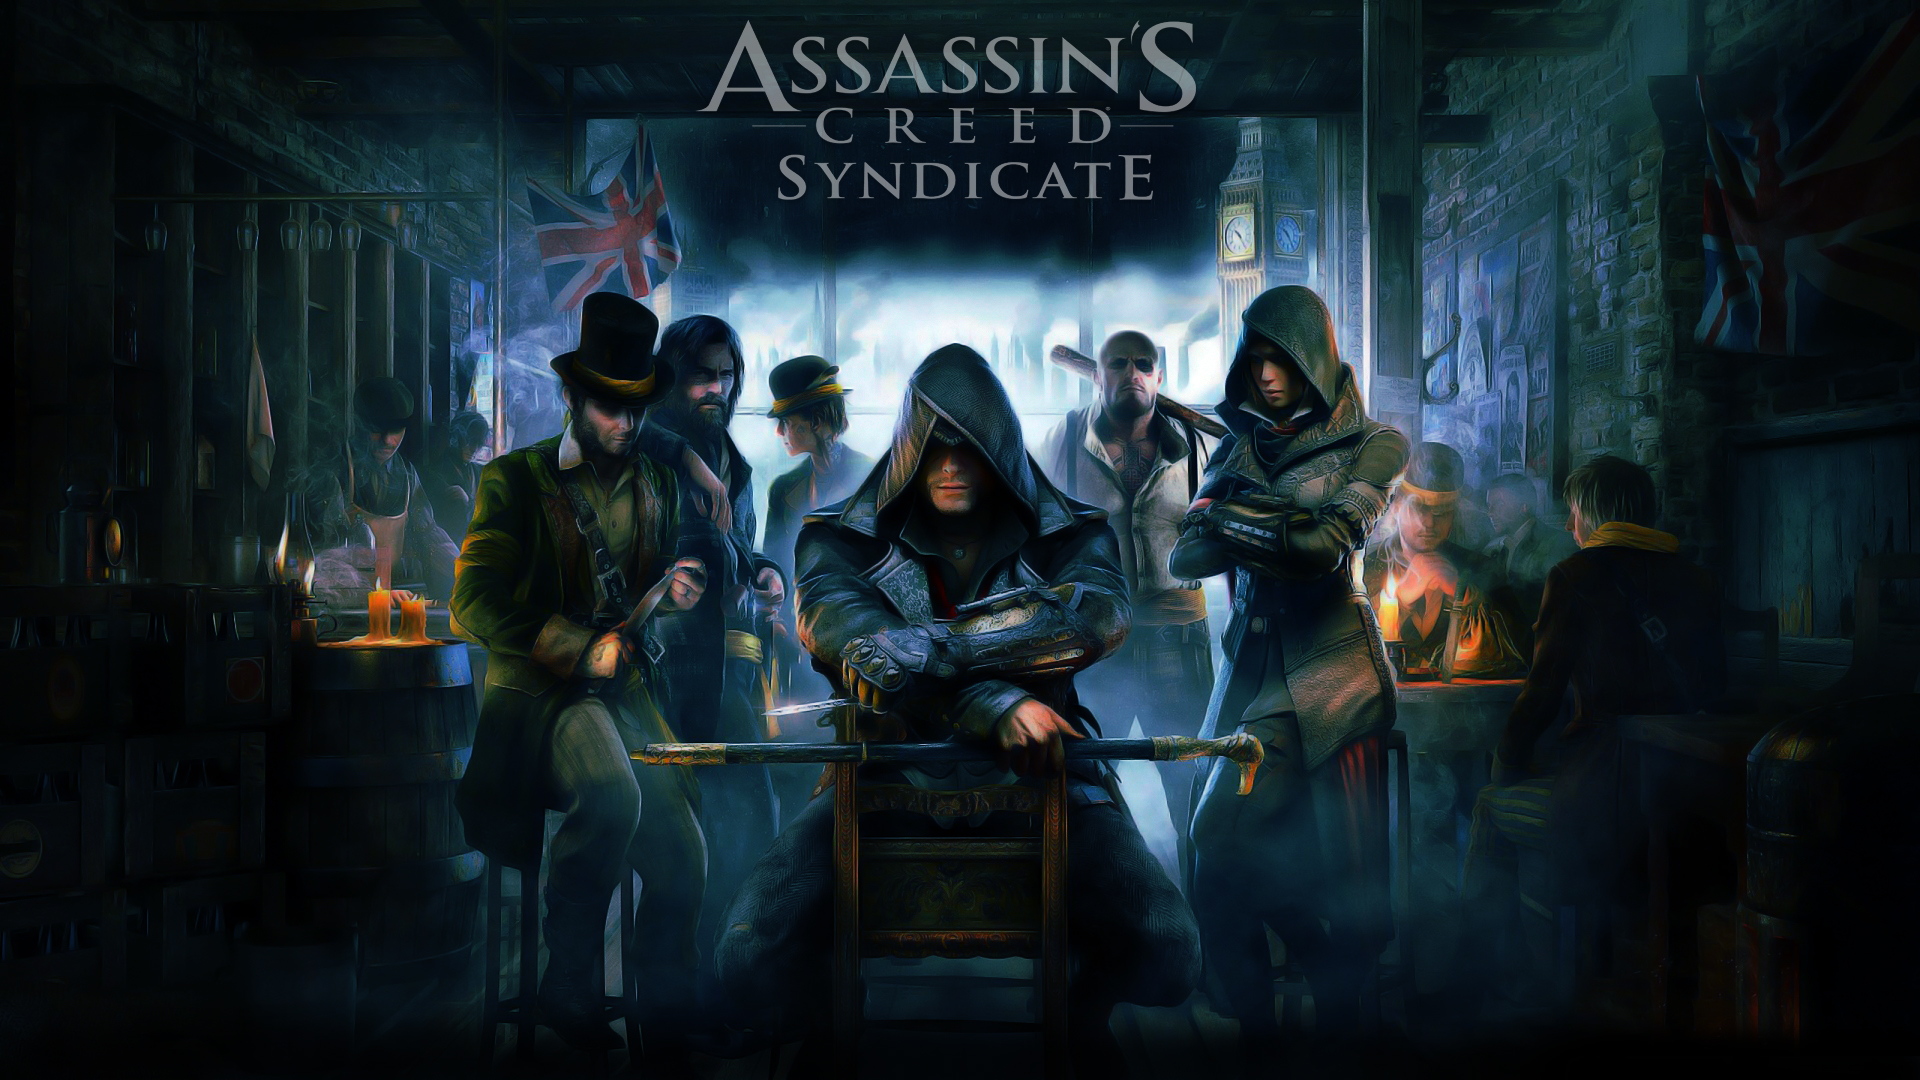 Assassins Creed Syndicate Wallpaper Cartoon Edit By Dougleino On Images, Photos, Reviews